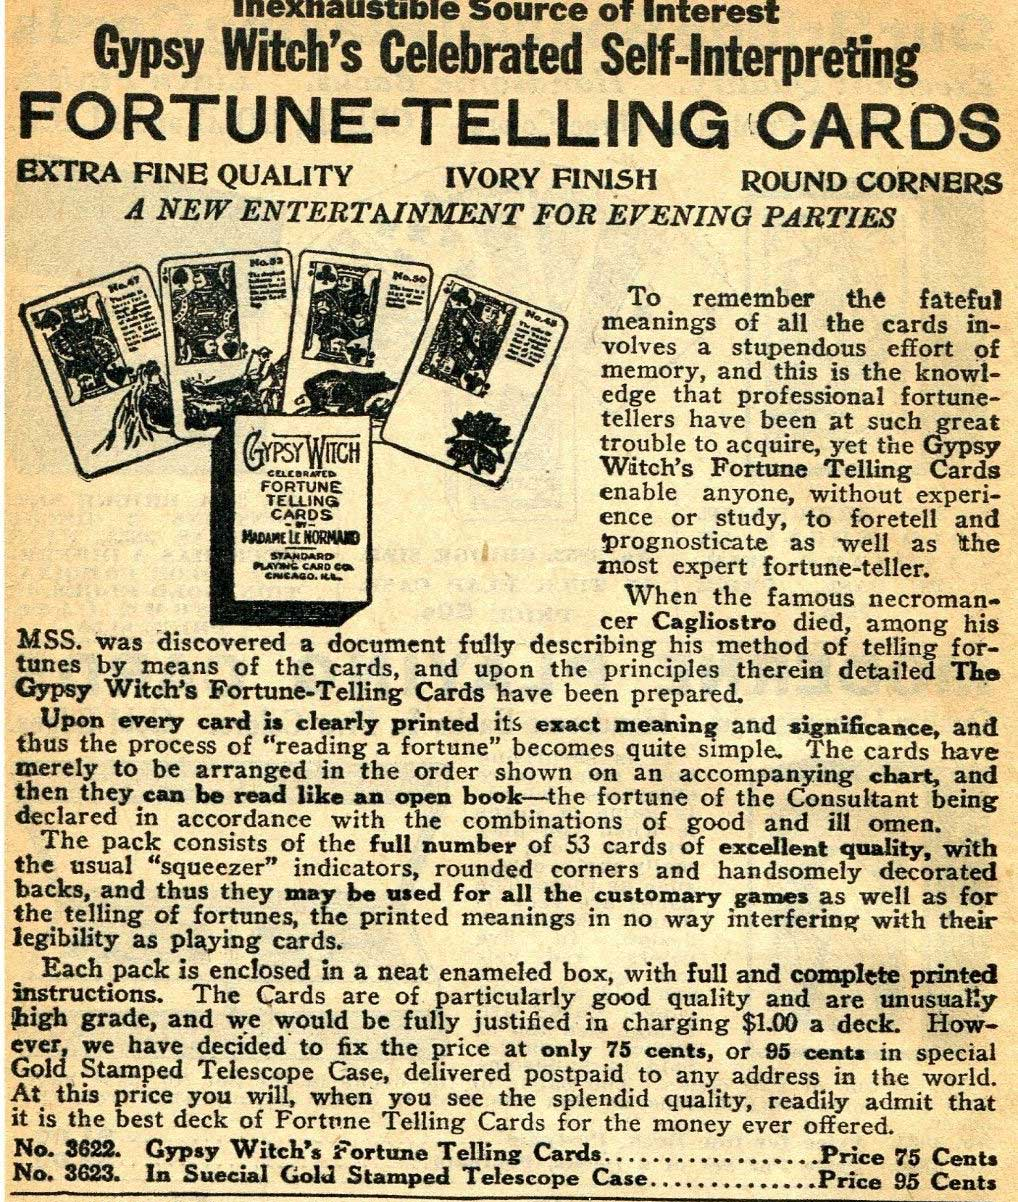 1929 advert for Gypsy Witch Fortune Telling Cards